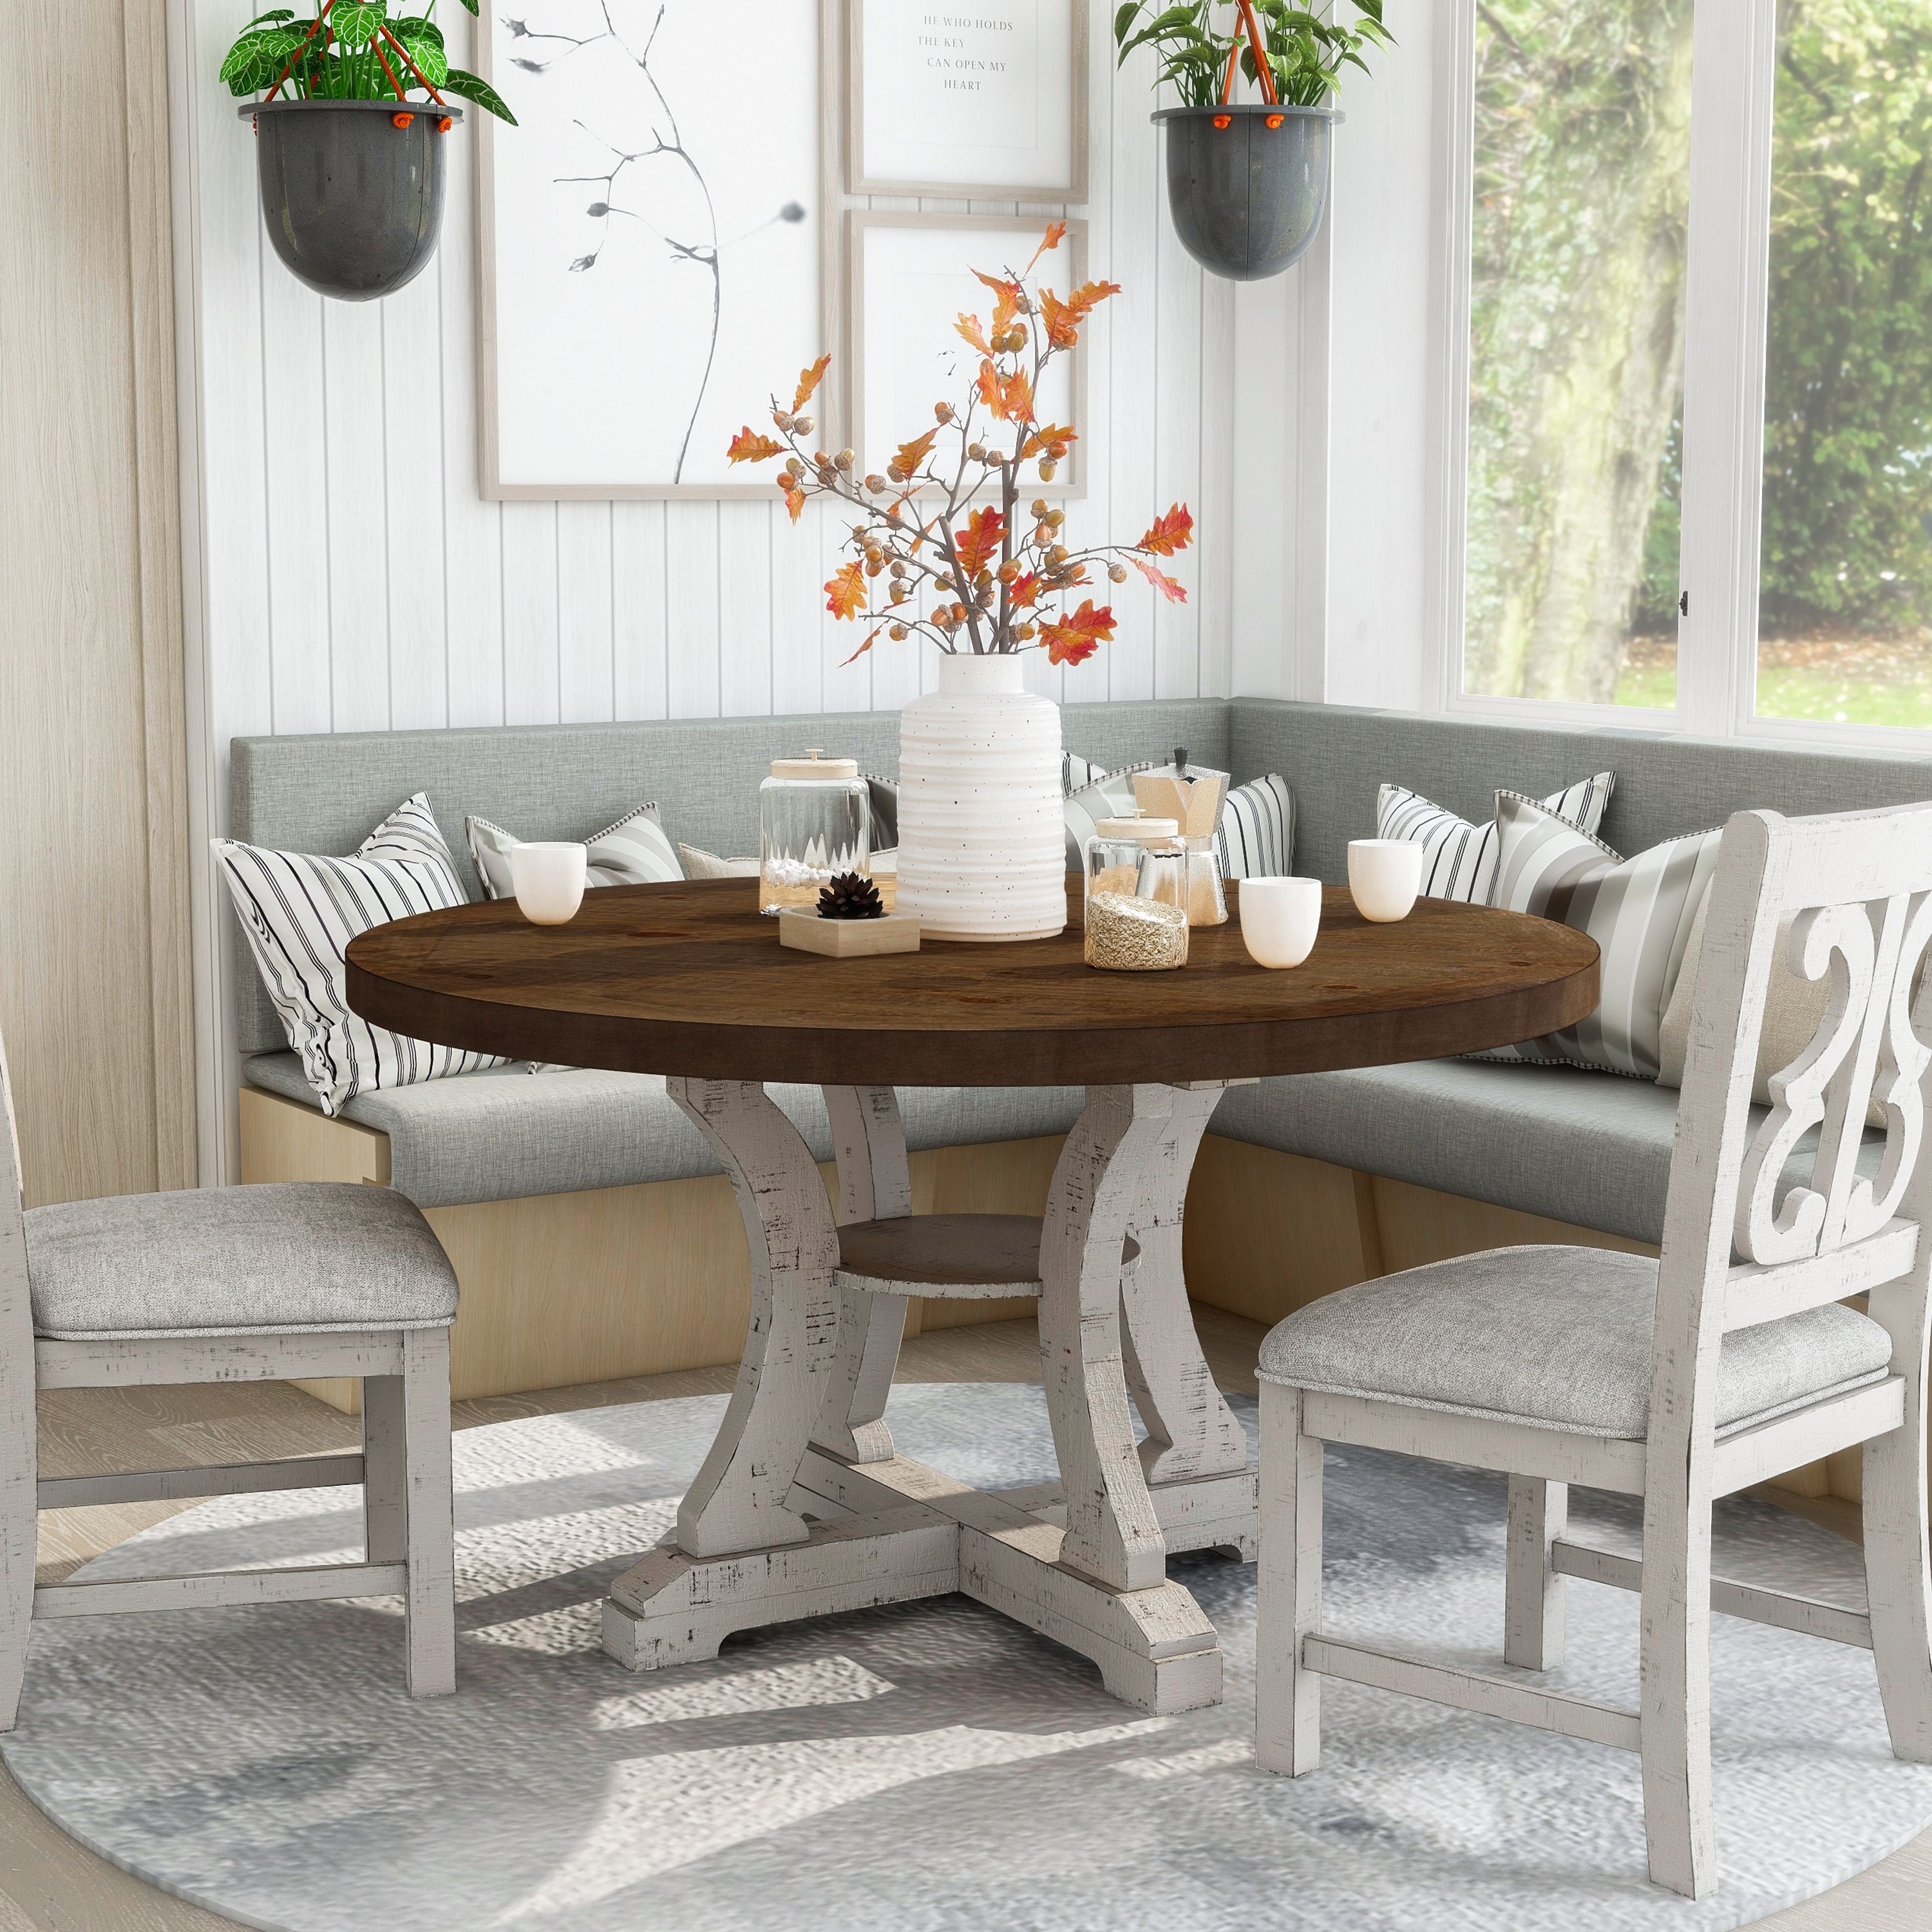 Furniture Of America Sylmer Farmhouse Round Dining Table Overstock 32301070